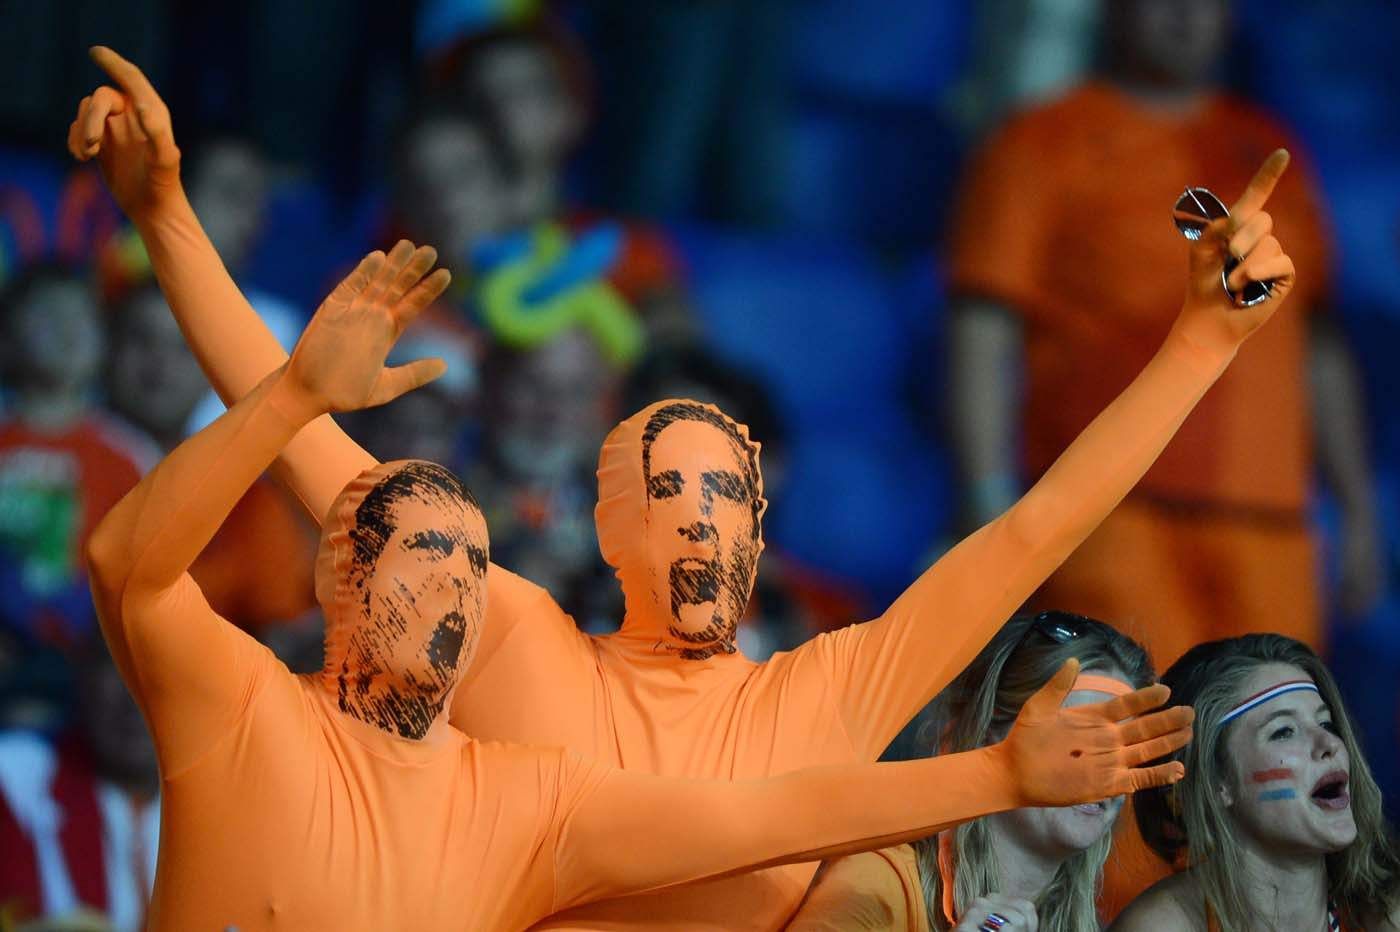 Fans from Netherlands cheer prior to the begining of the Euro 2012 football championships match Portugal vs. Netherlands, on June 17, 2012 at the Metalist stadium in Kharkov. (Patrick Hertzog/AFP/Getty Images)